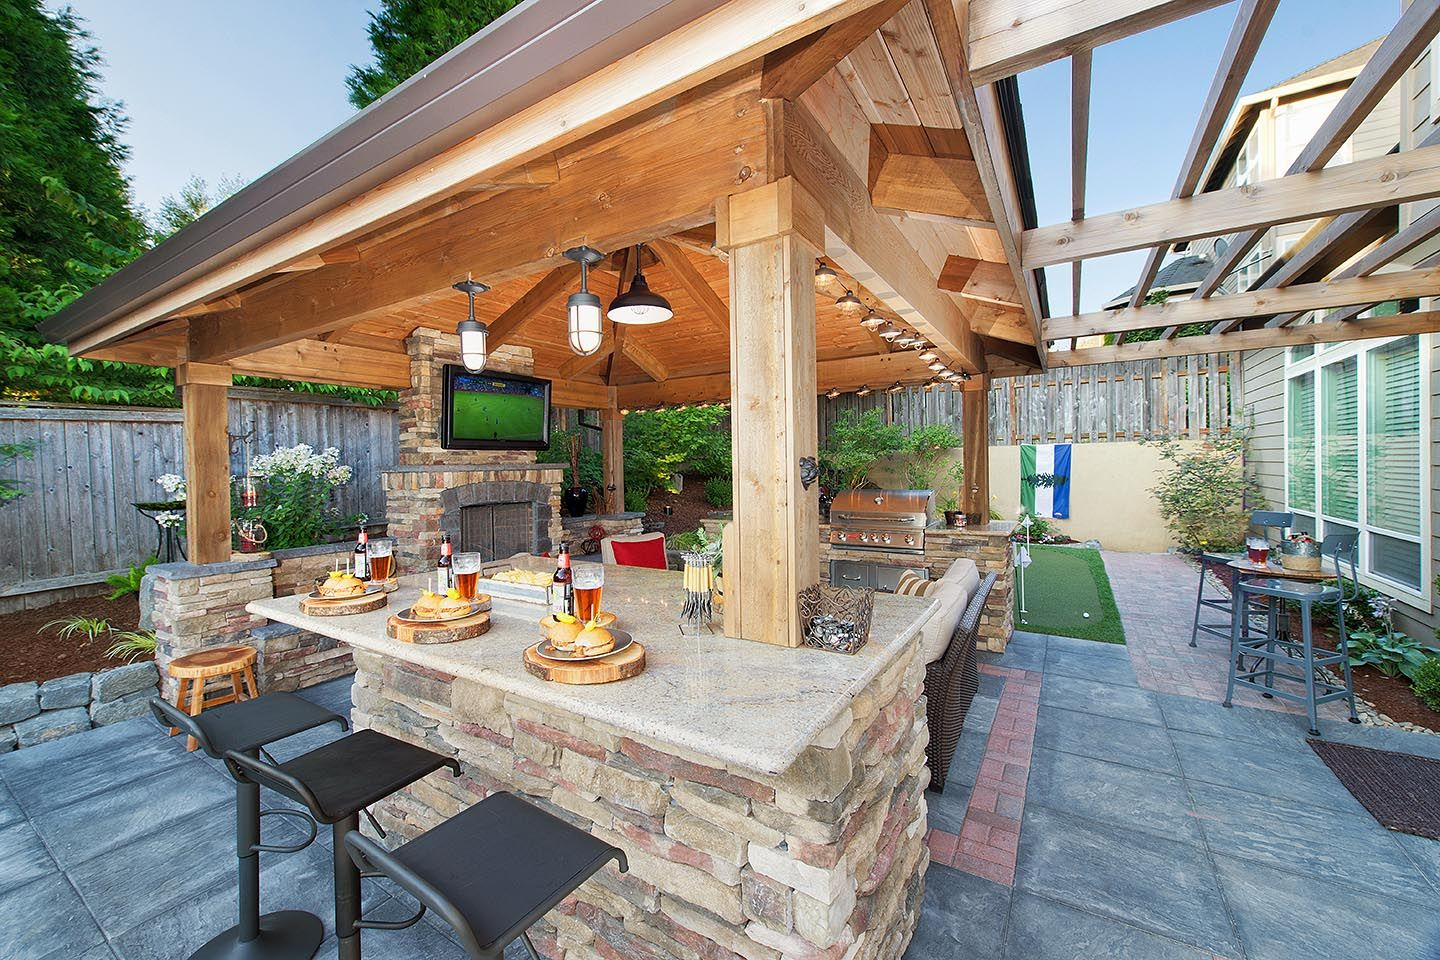 Backyard Landscape Design in 2020 Backyard patio designs